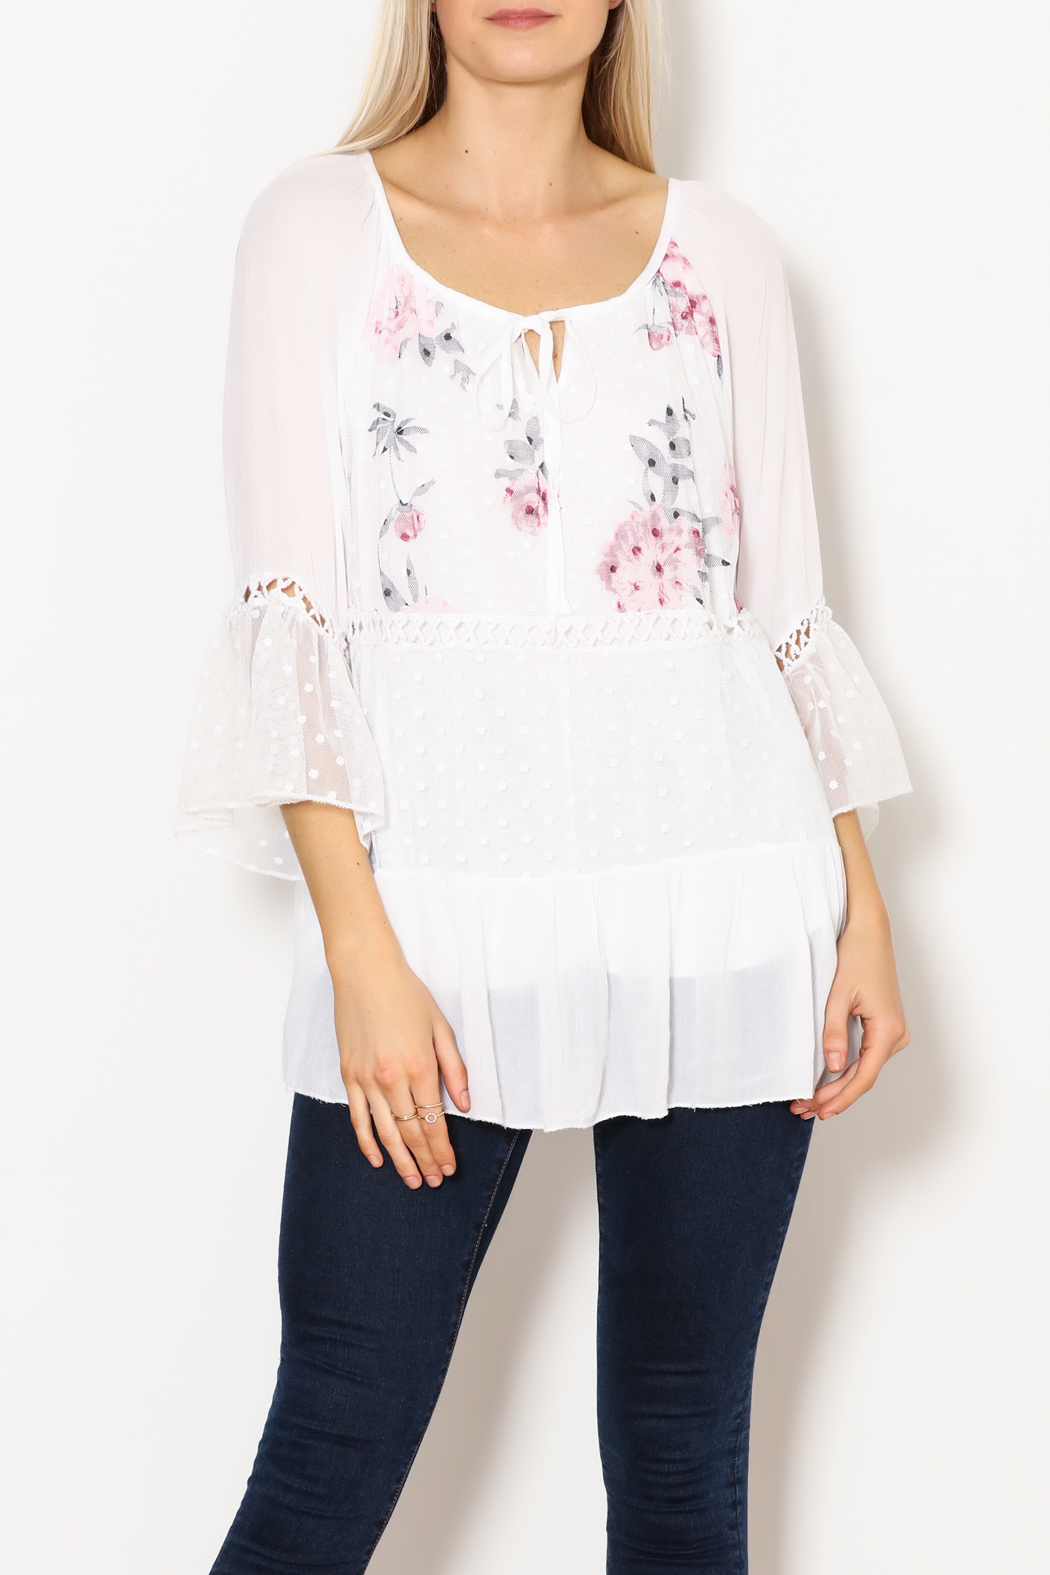 Bella Amore White Dot With Floral Italian Top - Front Full Image